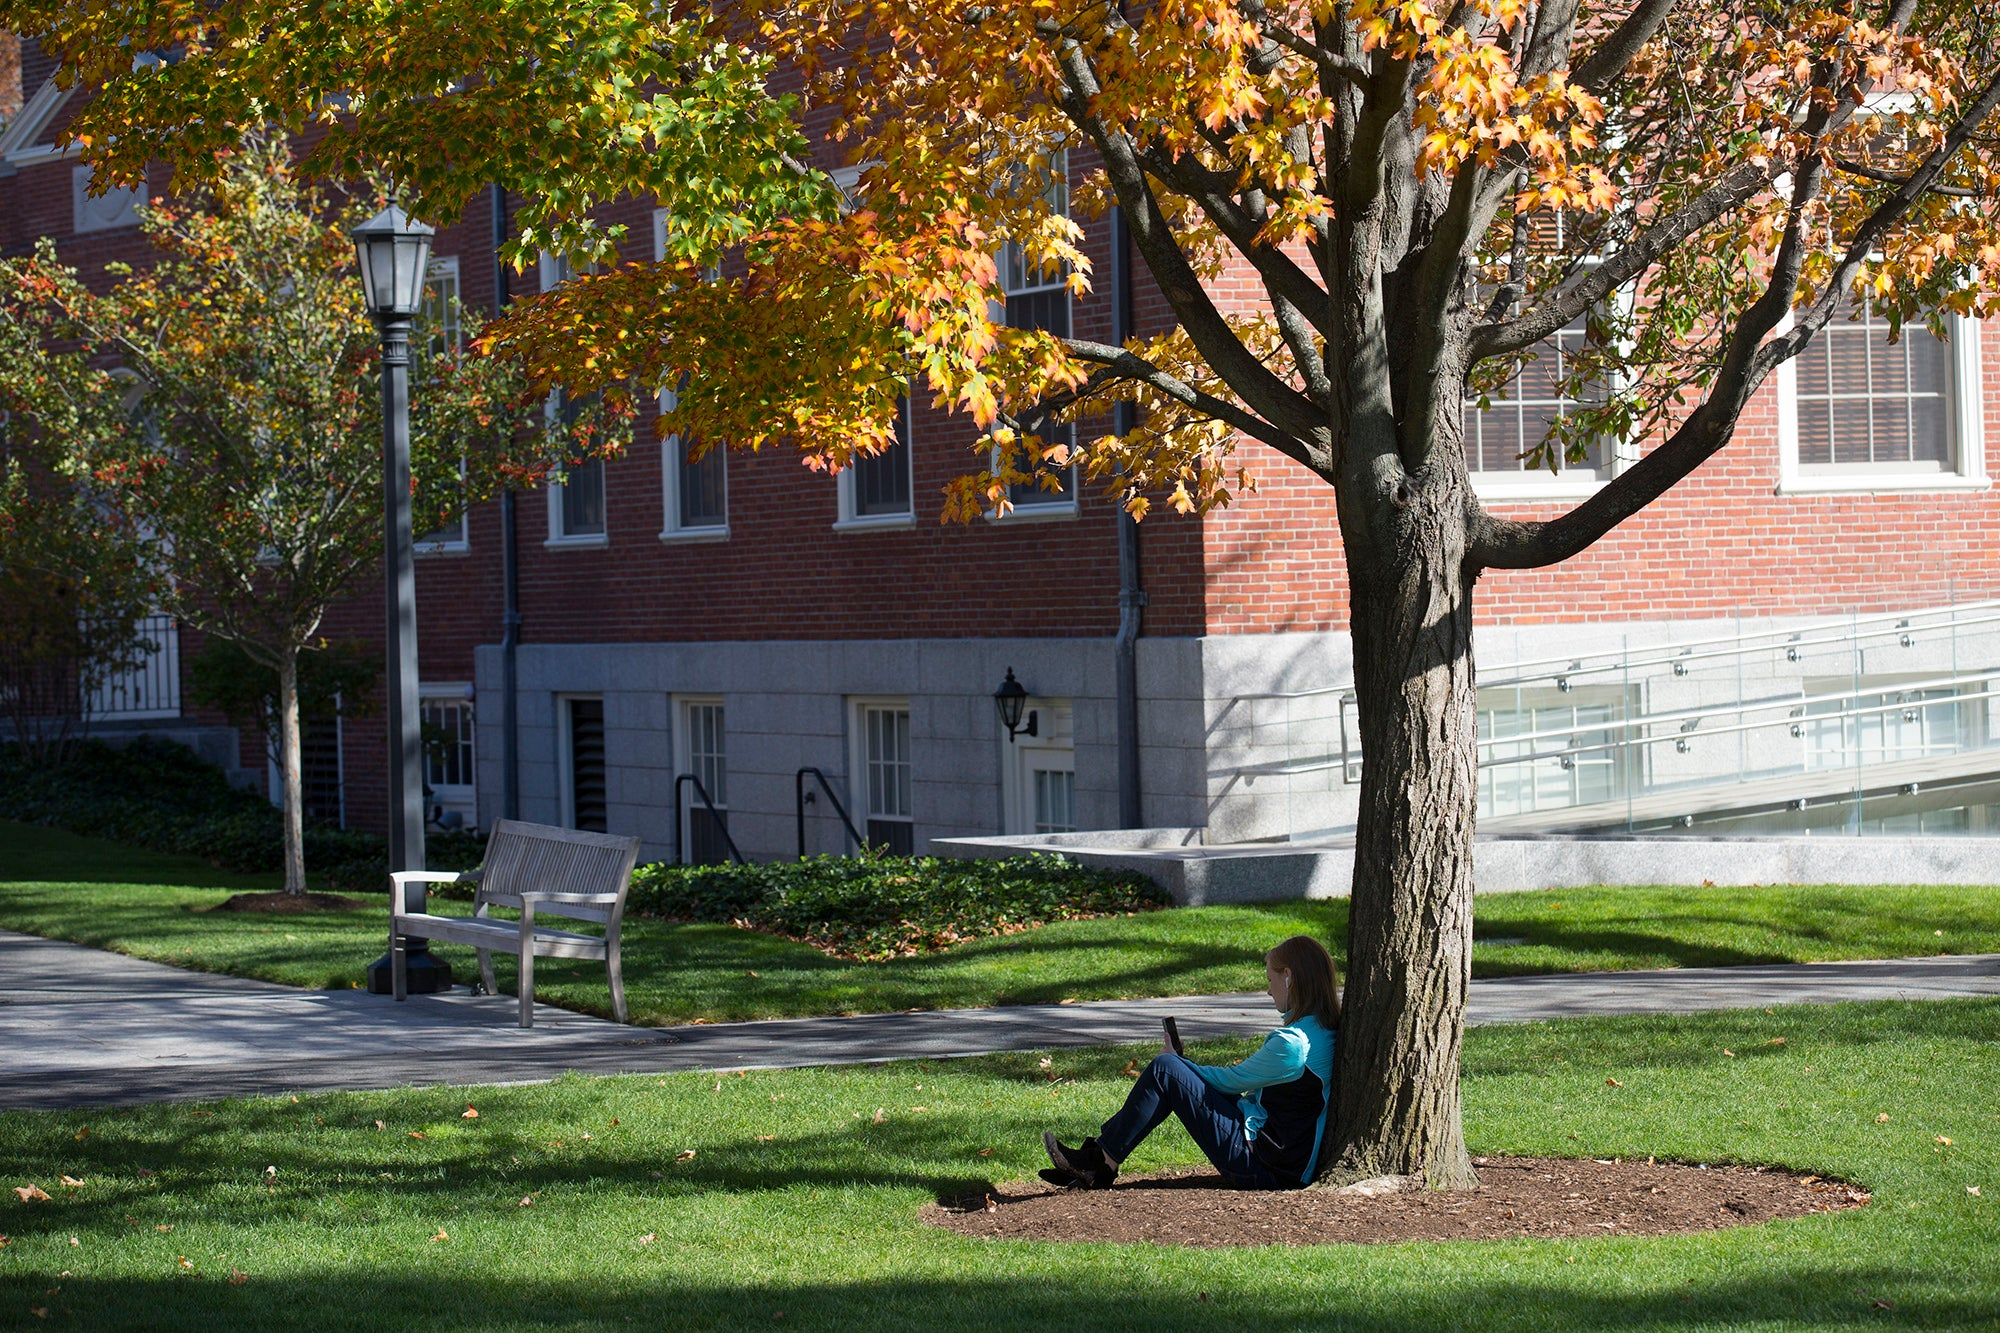 A woman sitting under a tree with autumn leaves